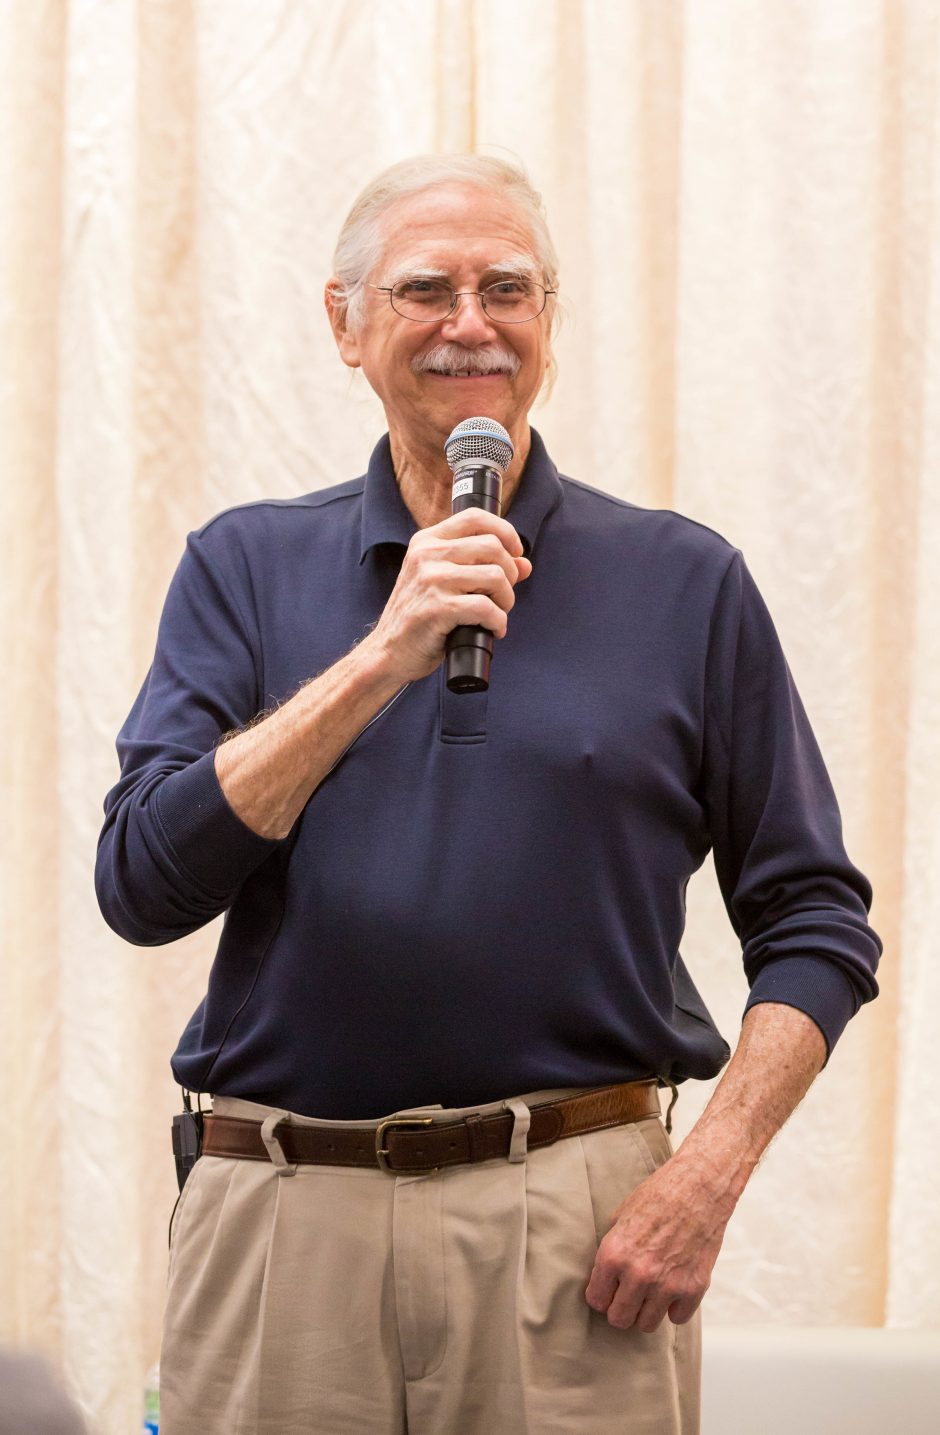 friendly older man holds mic while smiling